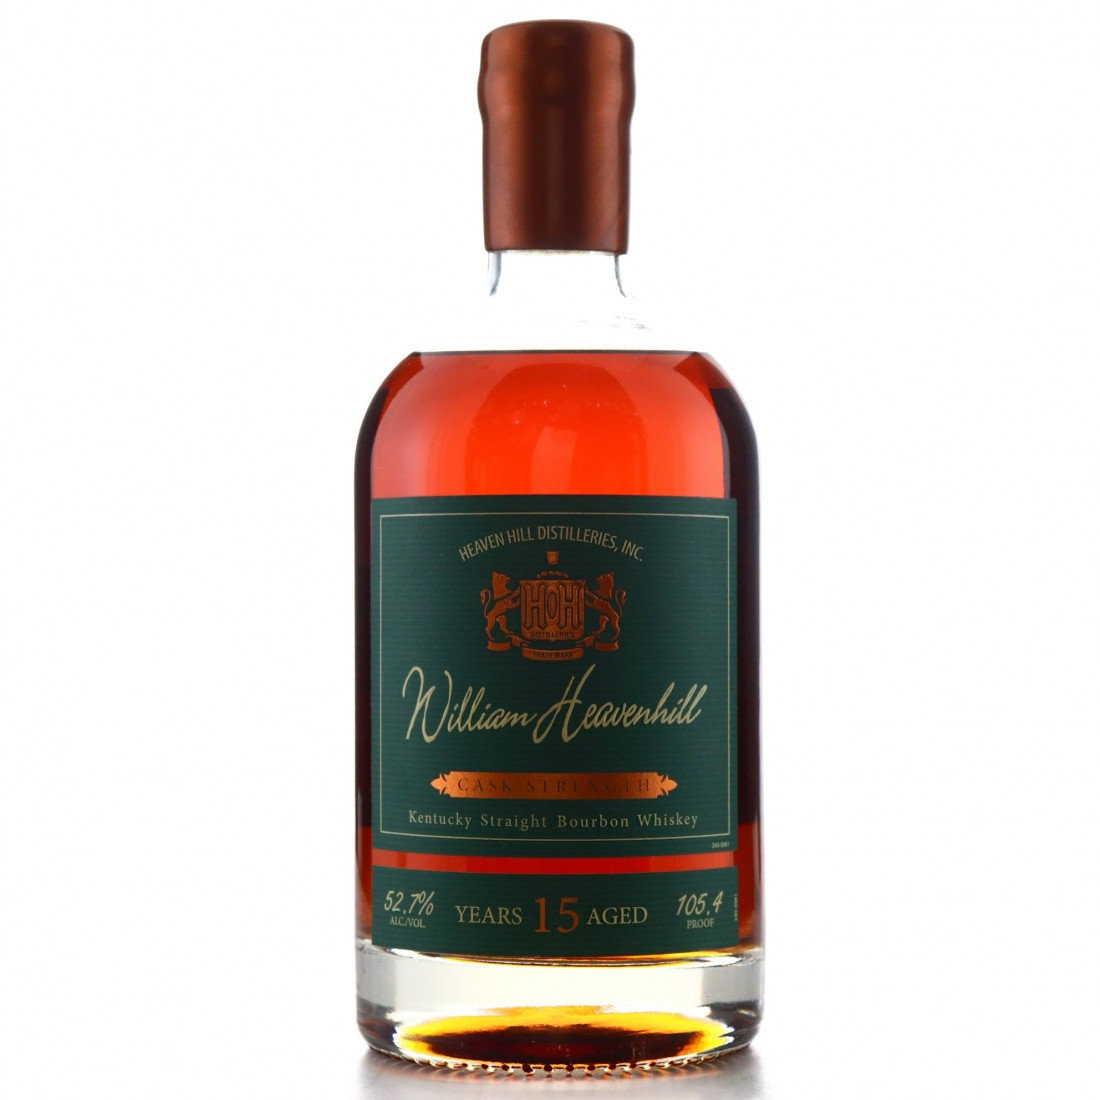 William Heavenhill Cask Strength 15 year old Kentucky Straight Bourbon 105.4 proof